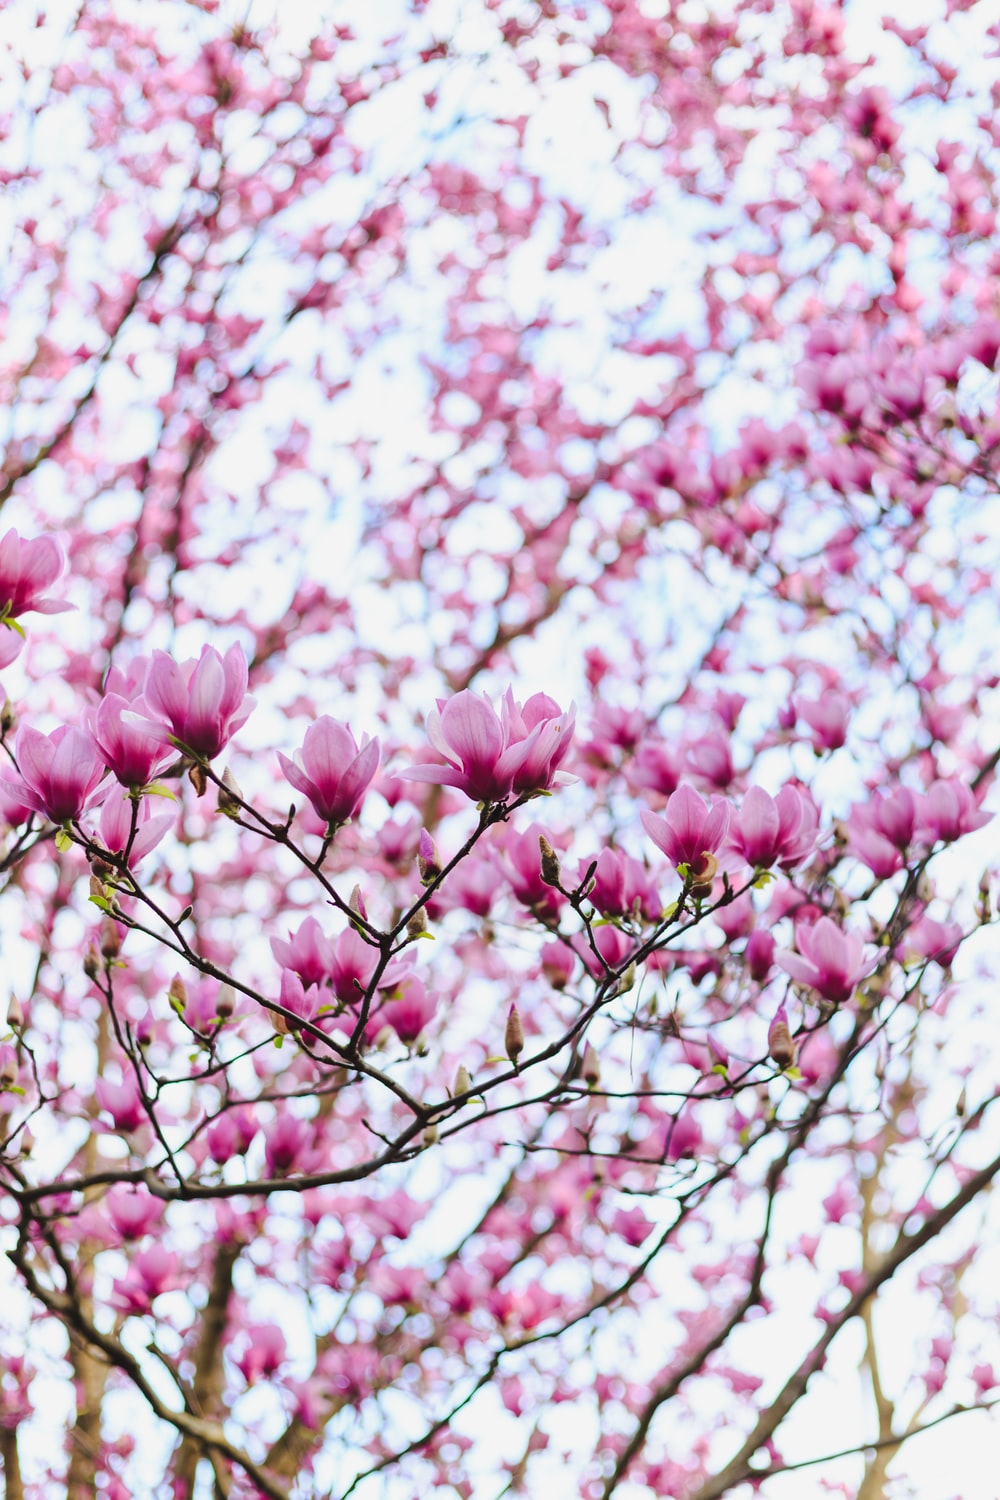 shallow focus photo of pink cherry blossoms